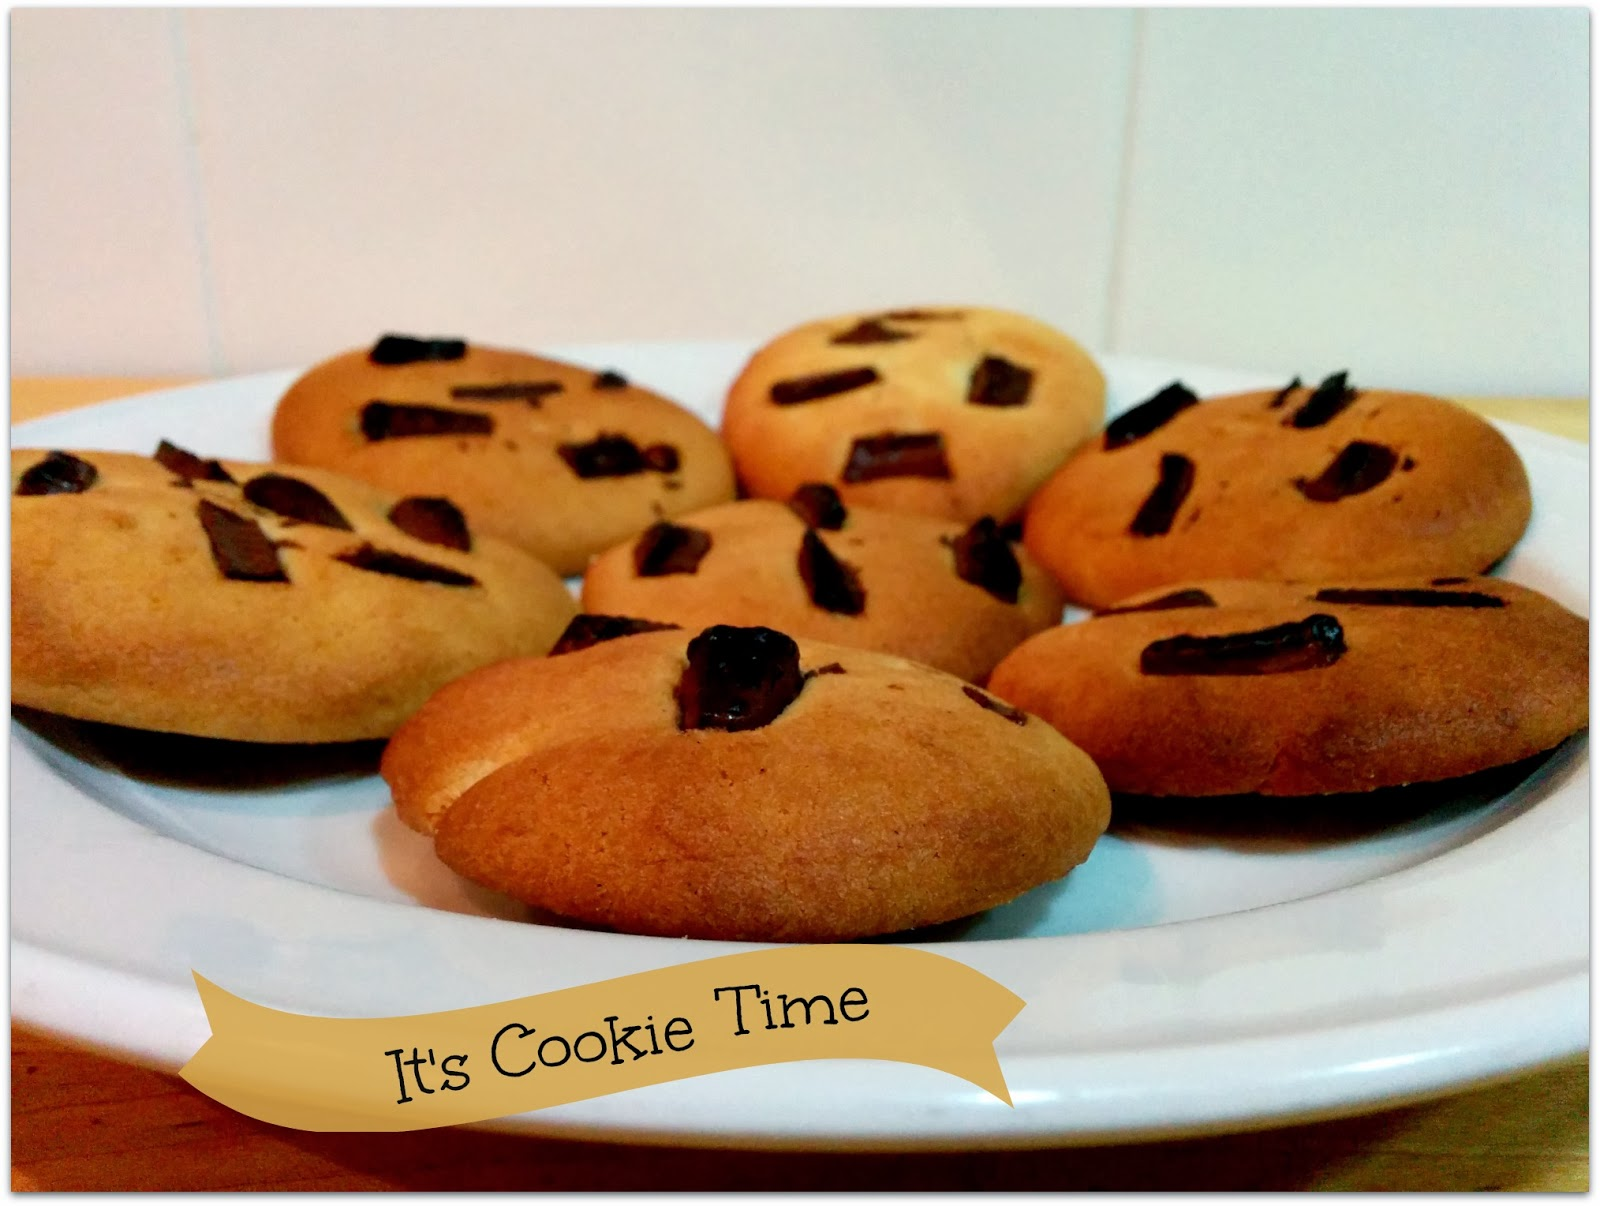 It's cookie time - galletas de chocolate y vainilla